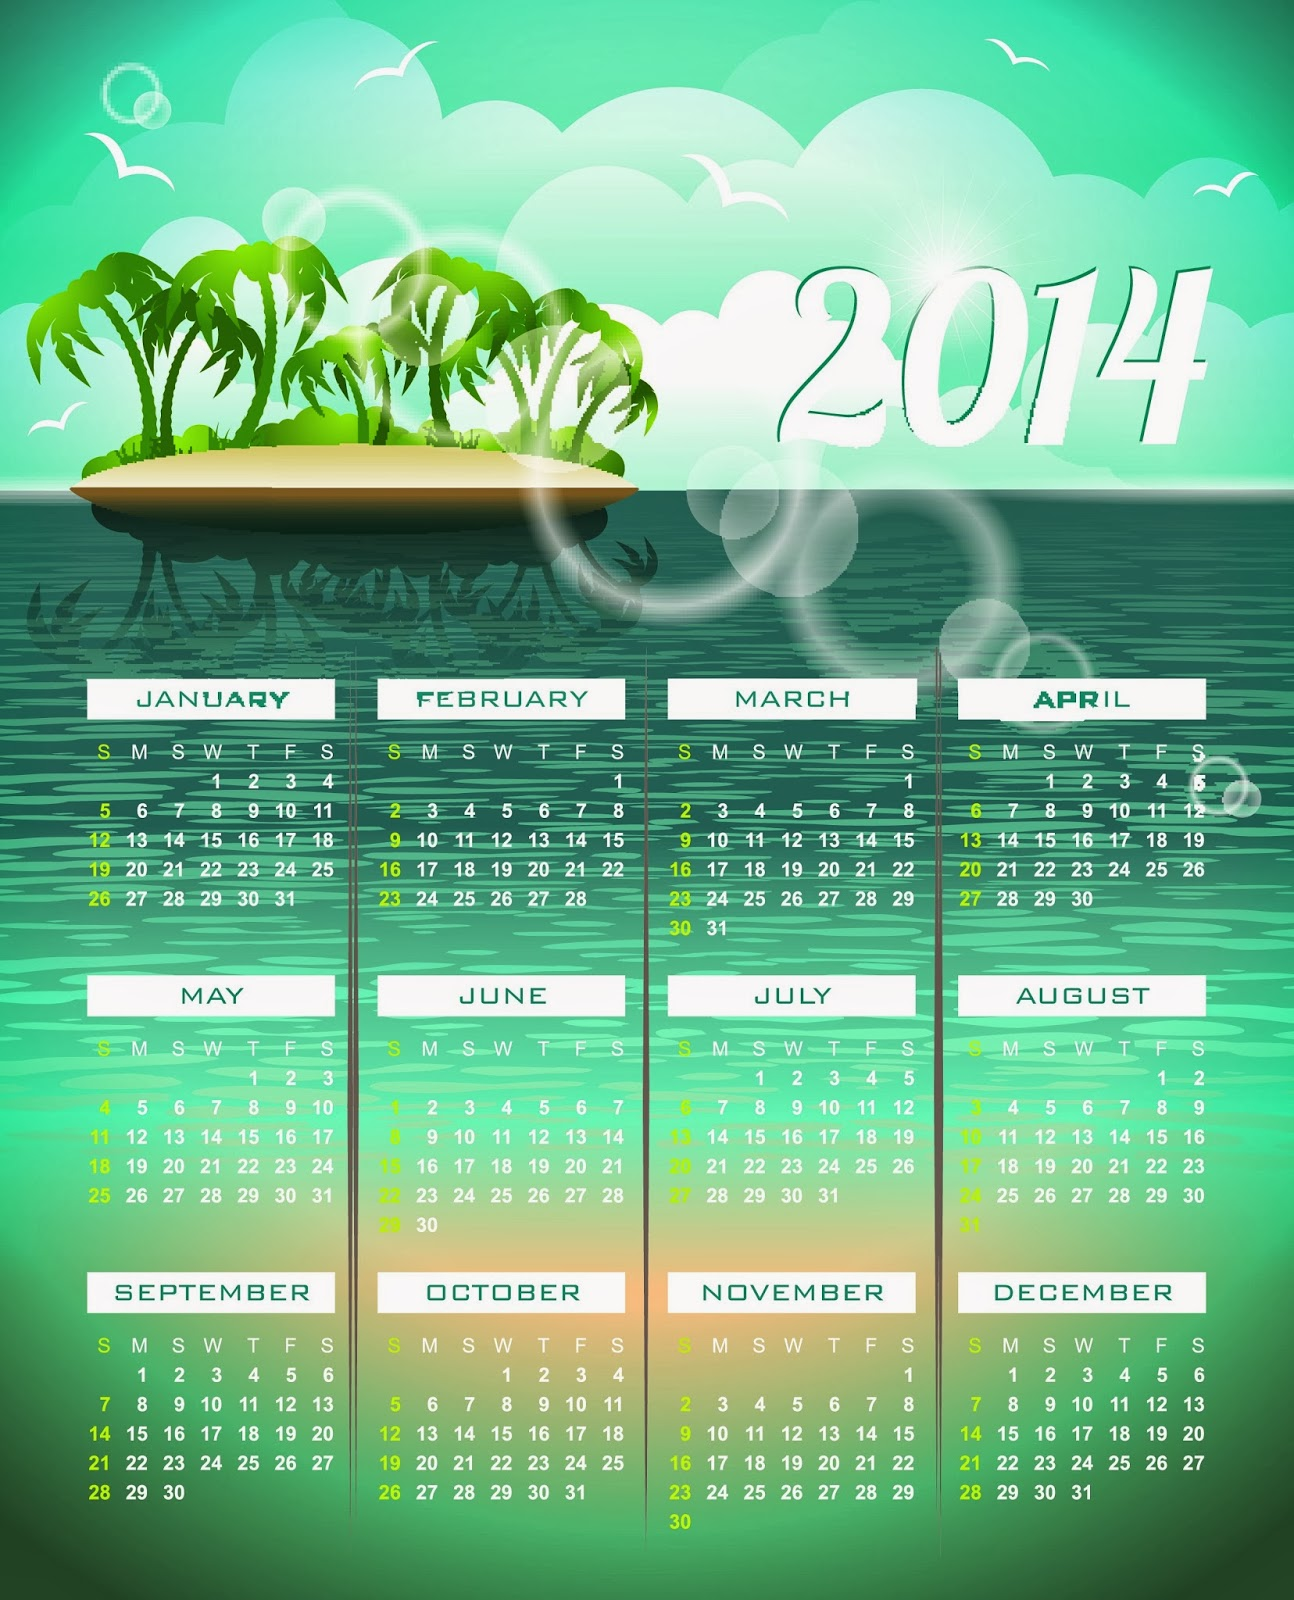 Calendar Wallpaper Originals : Wallpaper hollywood magnificent original calendar